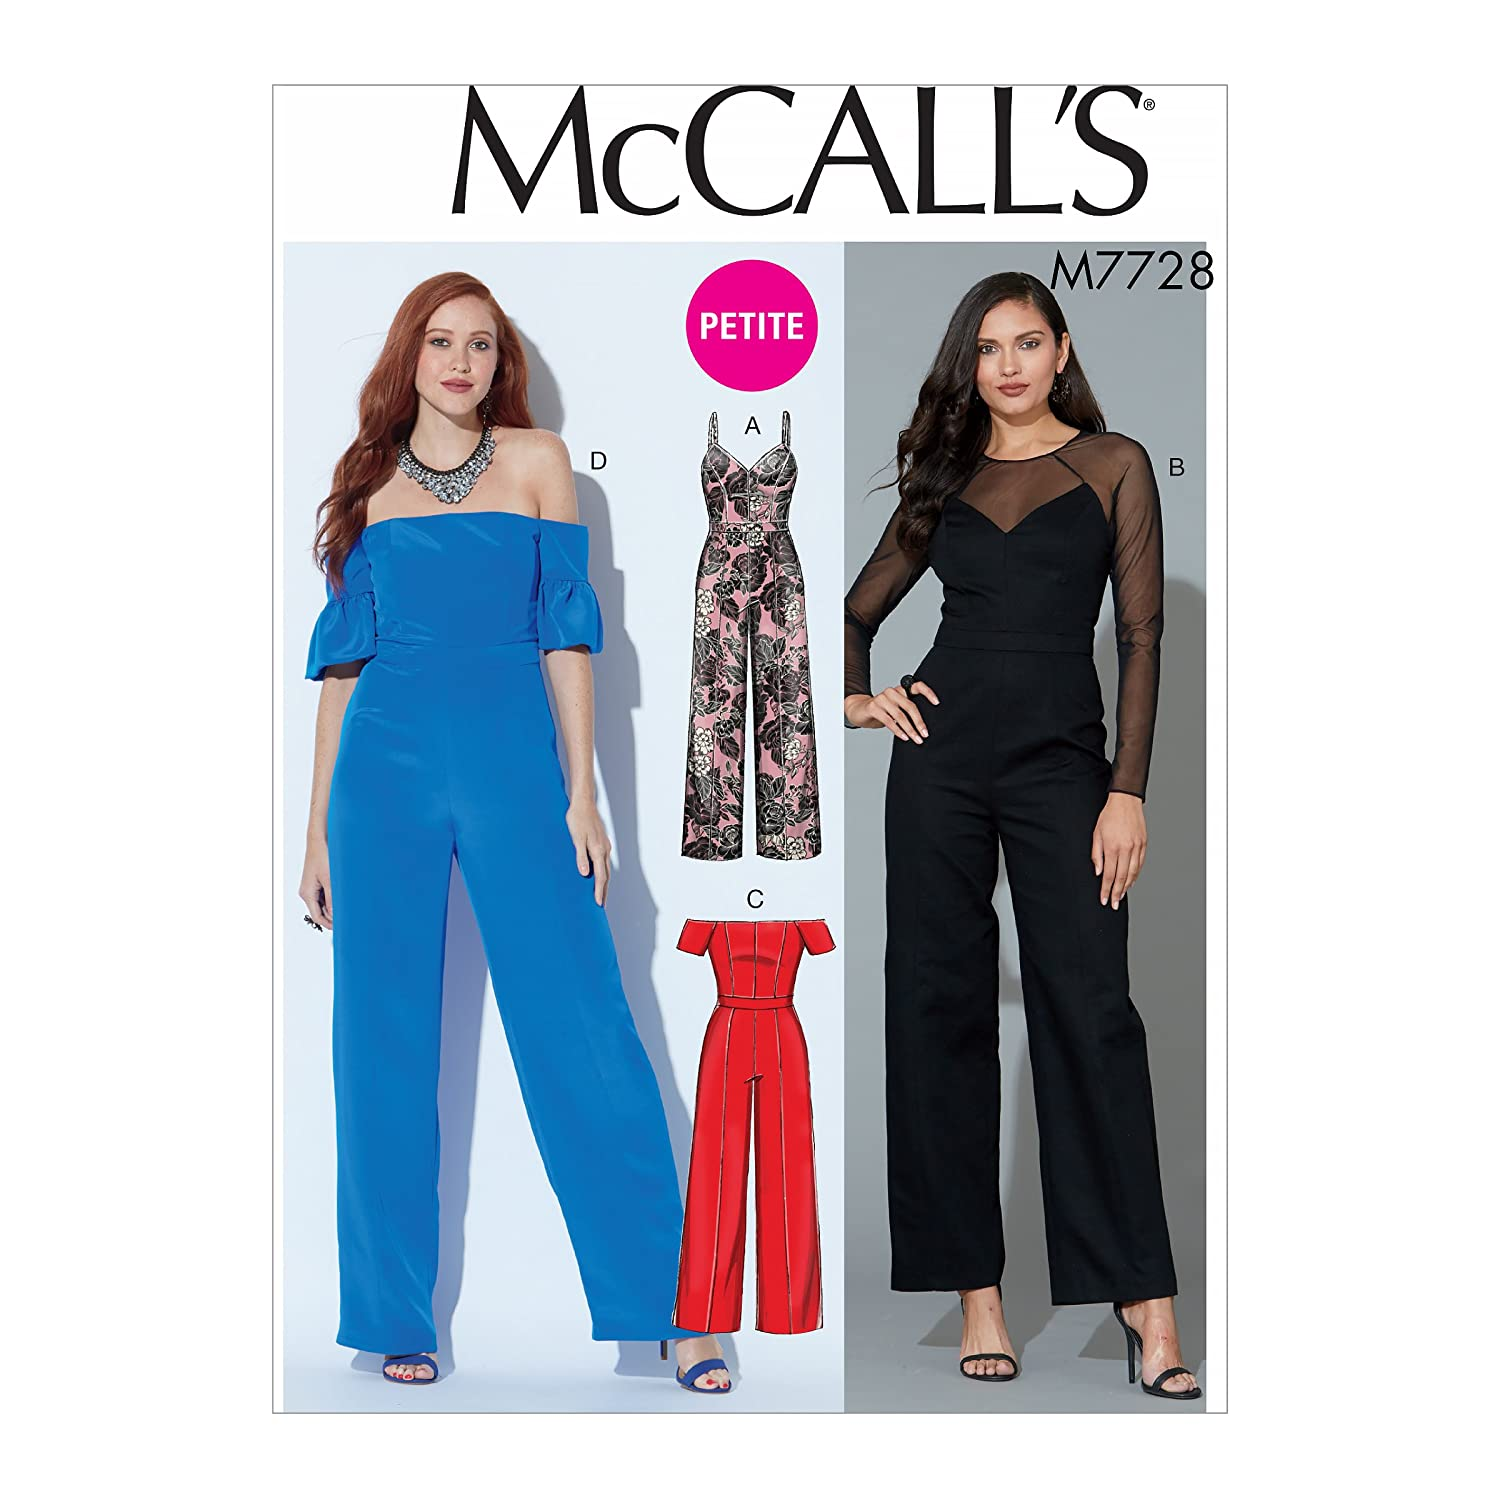 Amazon.com: McCalls 5945 Sewing Pattern Misses Tops, Pants and Shorts, Sizes 8-10-12: Kitchen & Dining